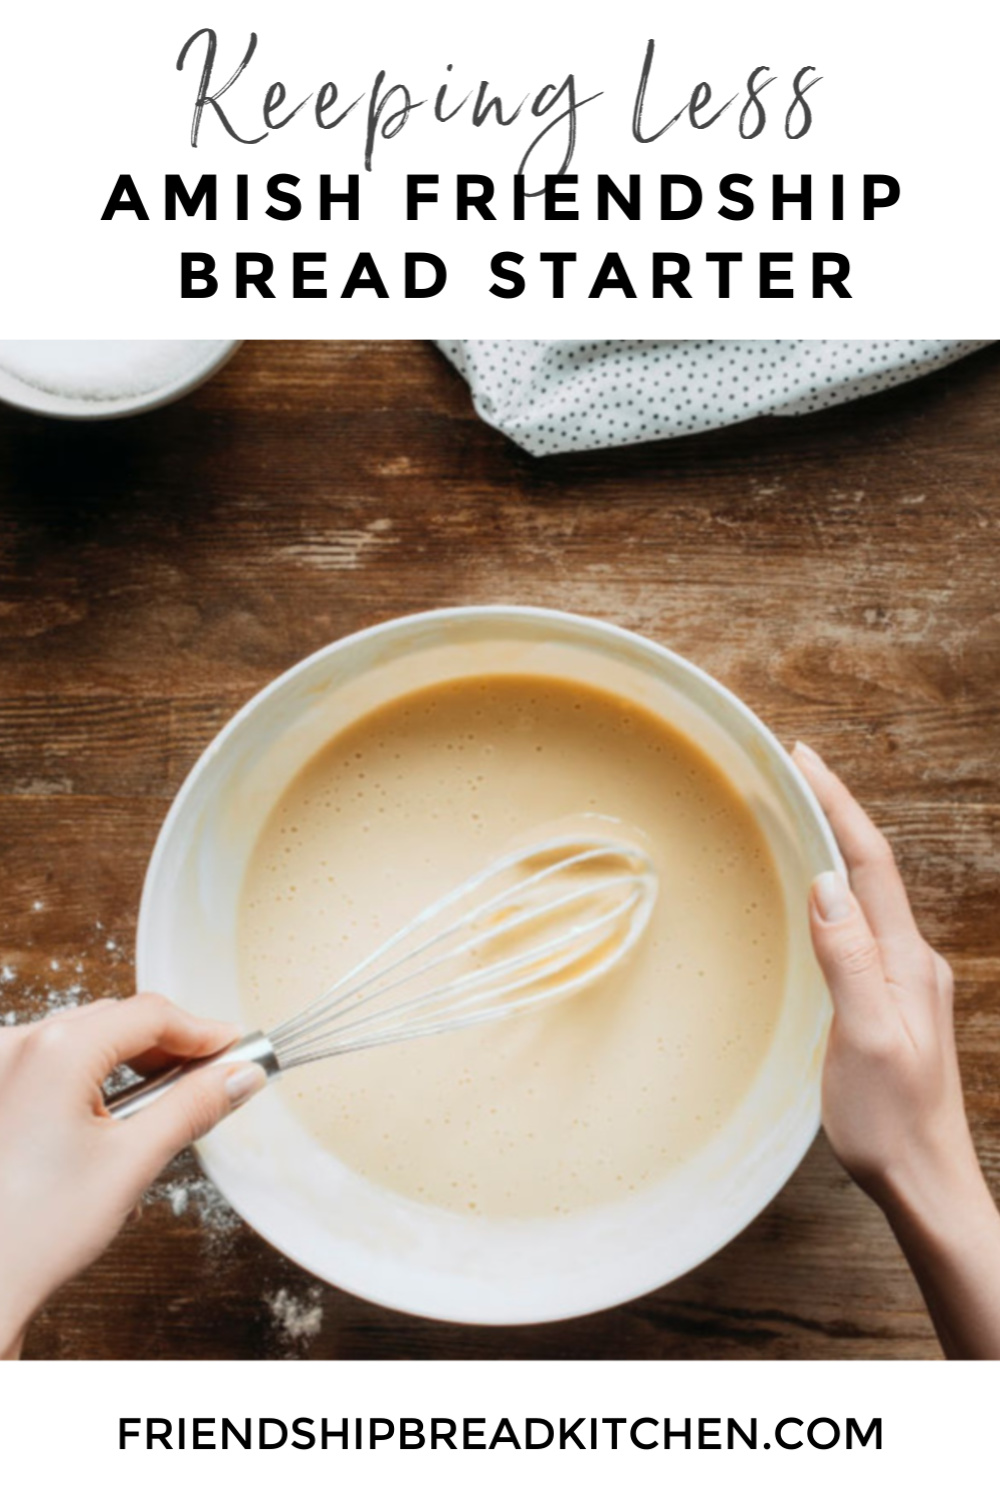 Tutorial - Keeping a Smaller Amish Friendship Bread Starter